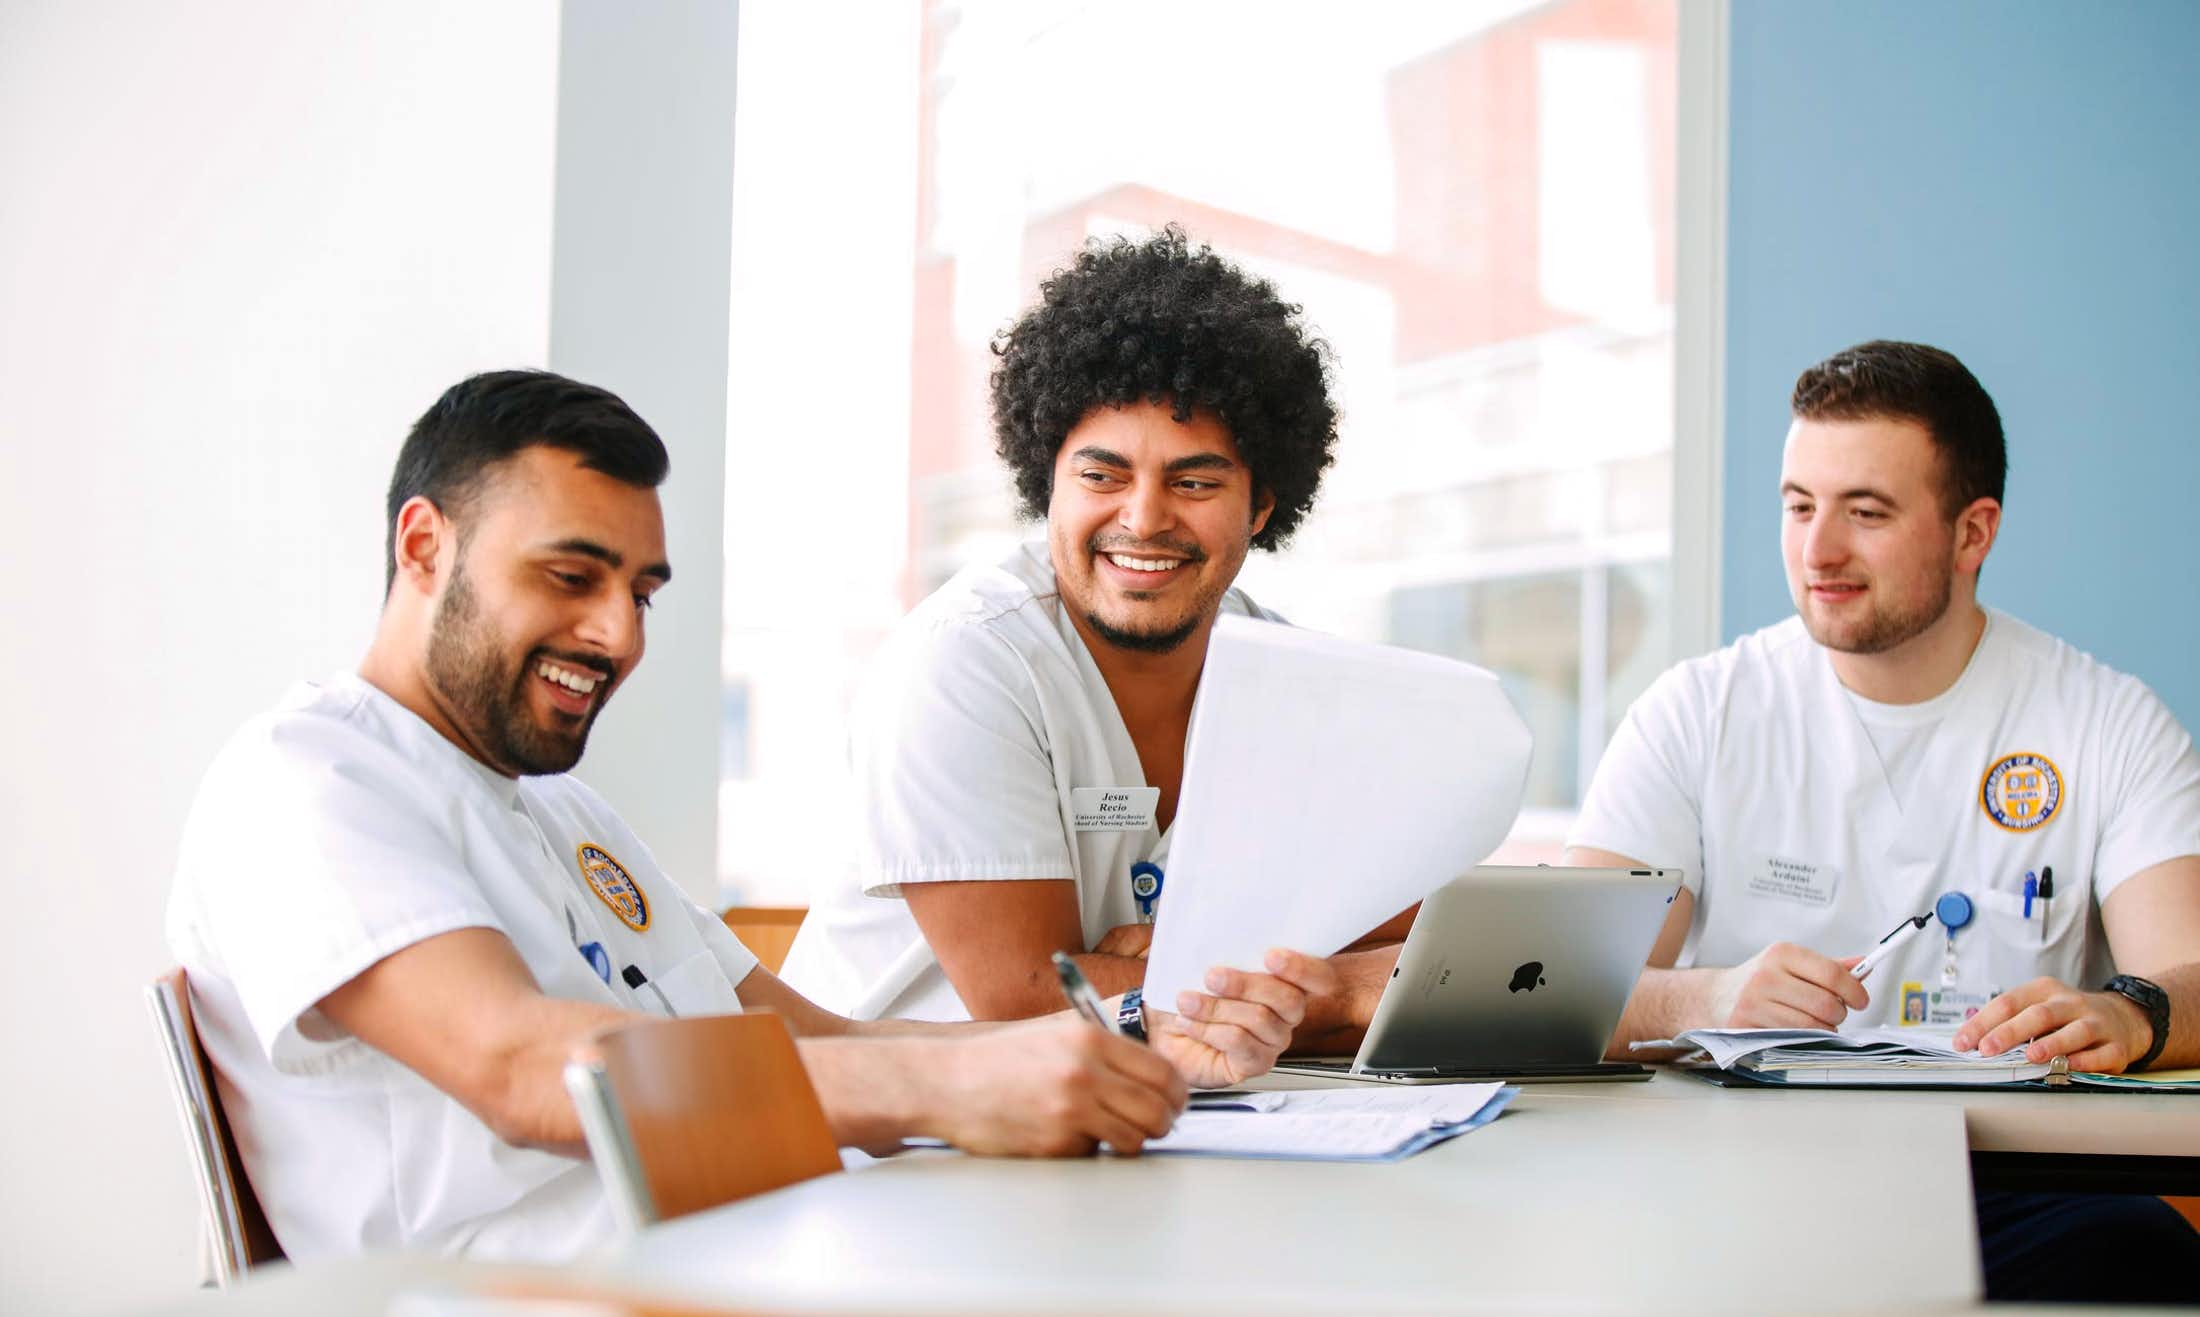 students learning on laptop